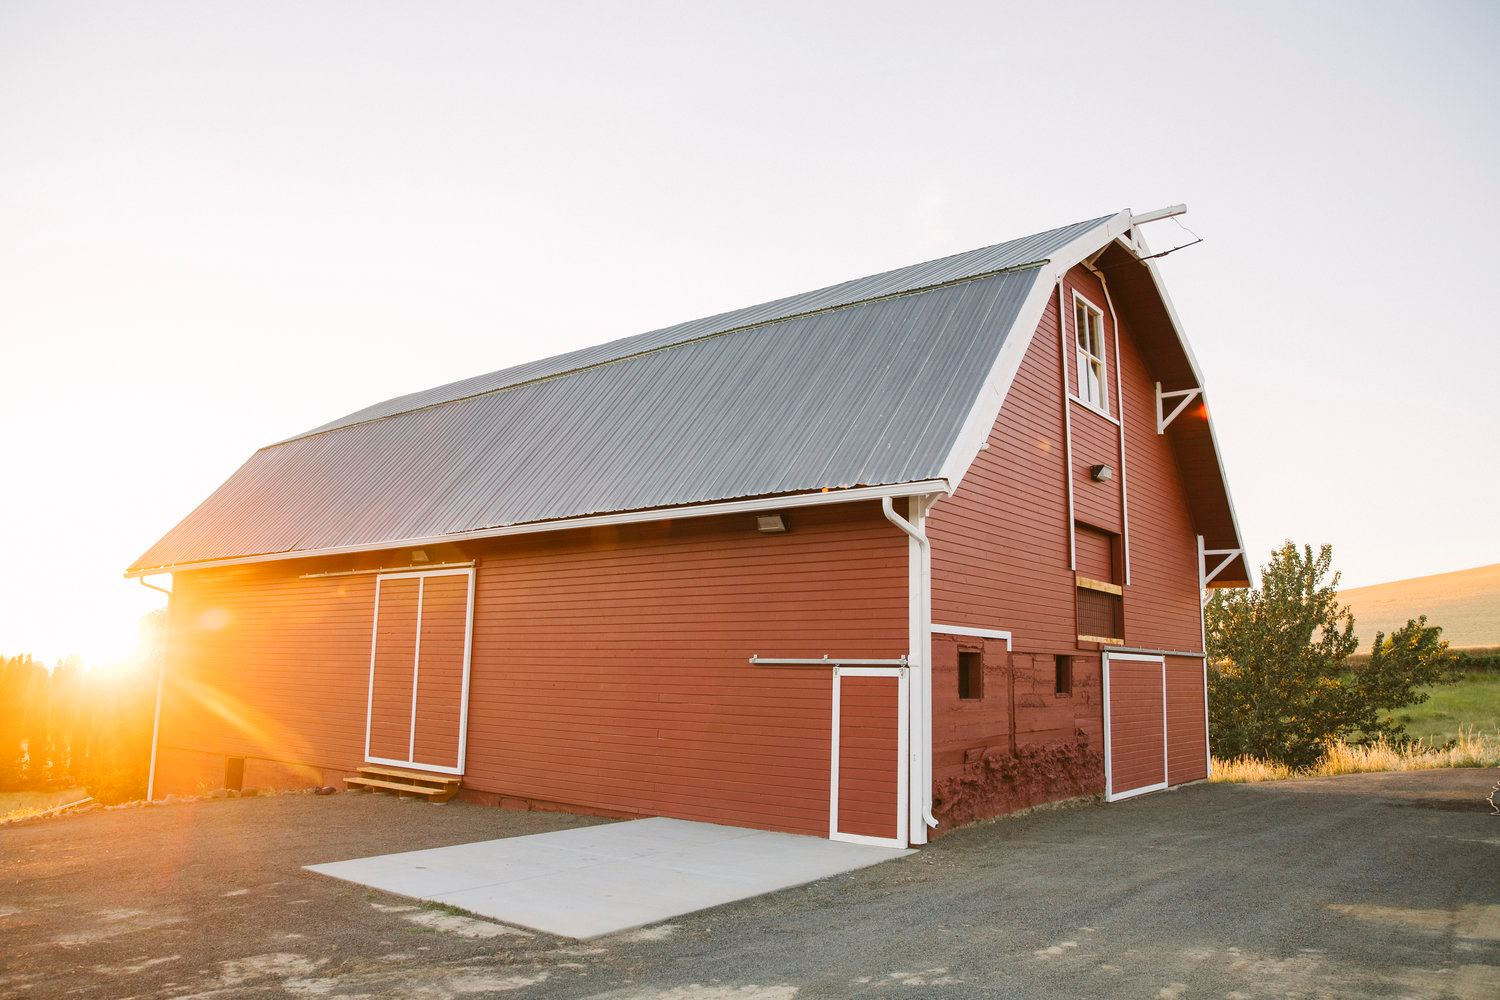 Red Star Barn - 2